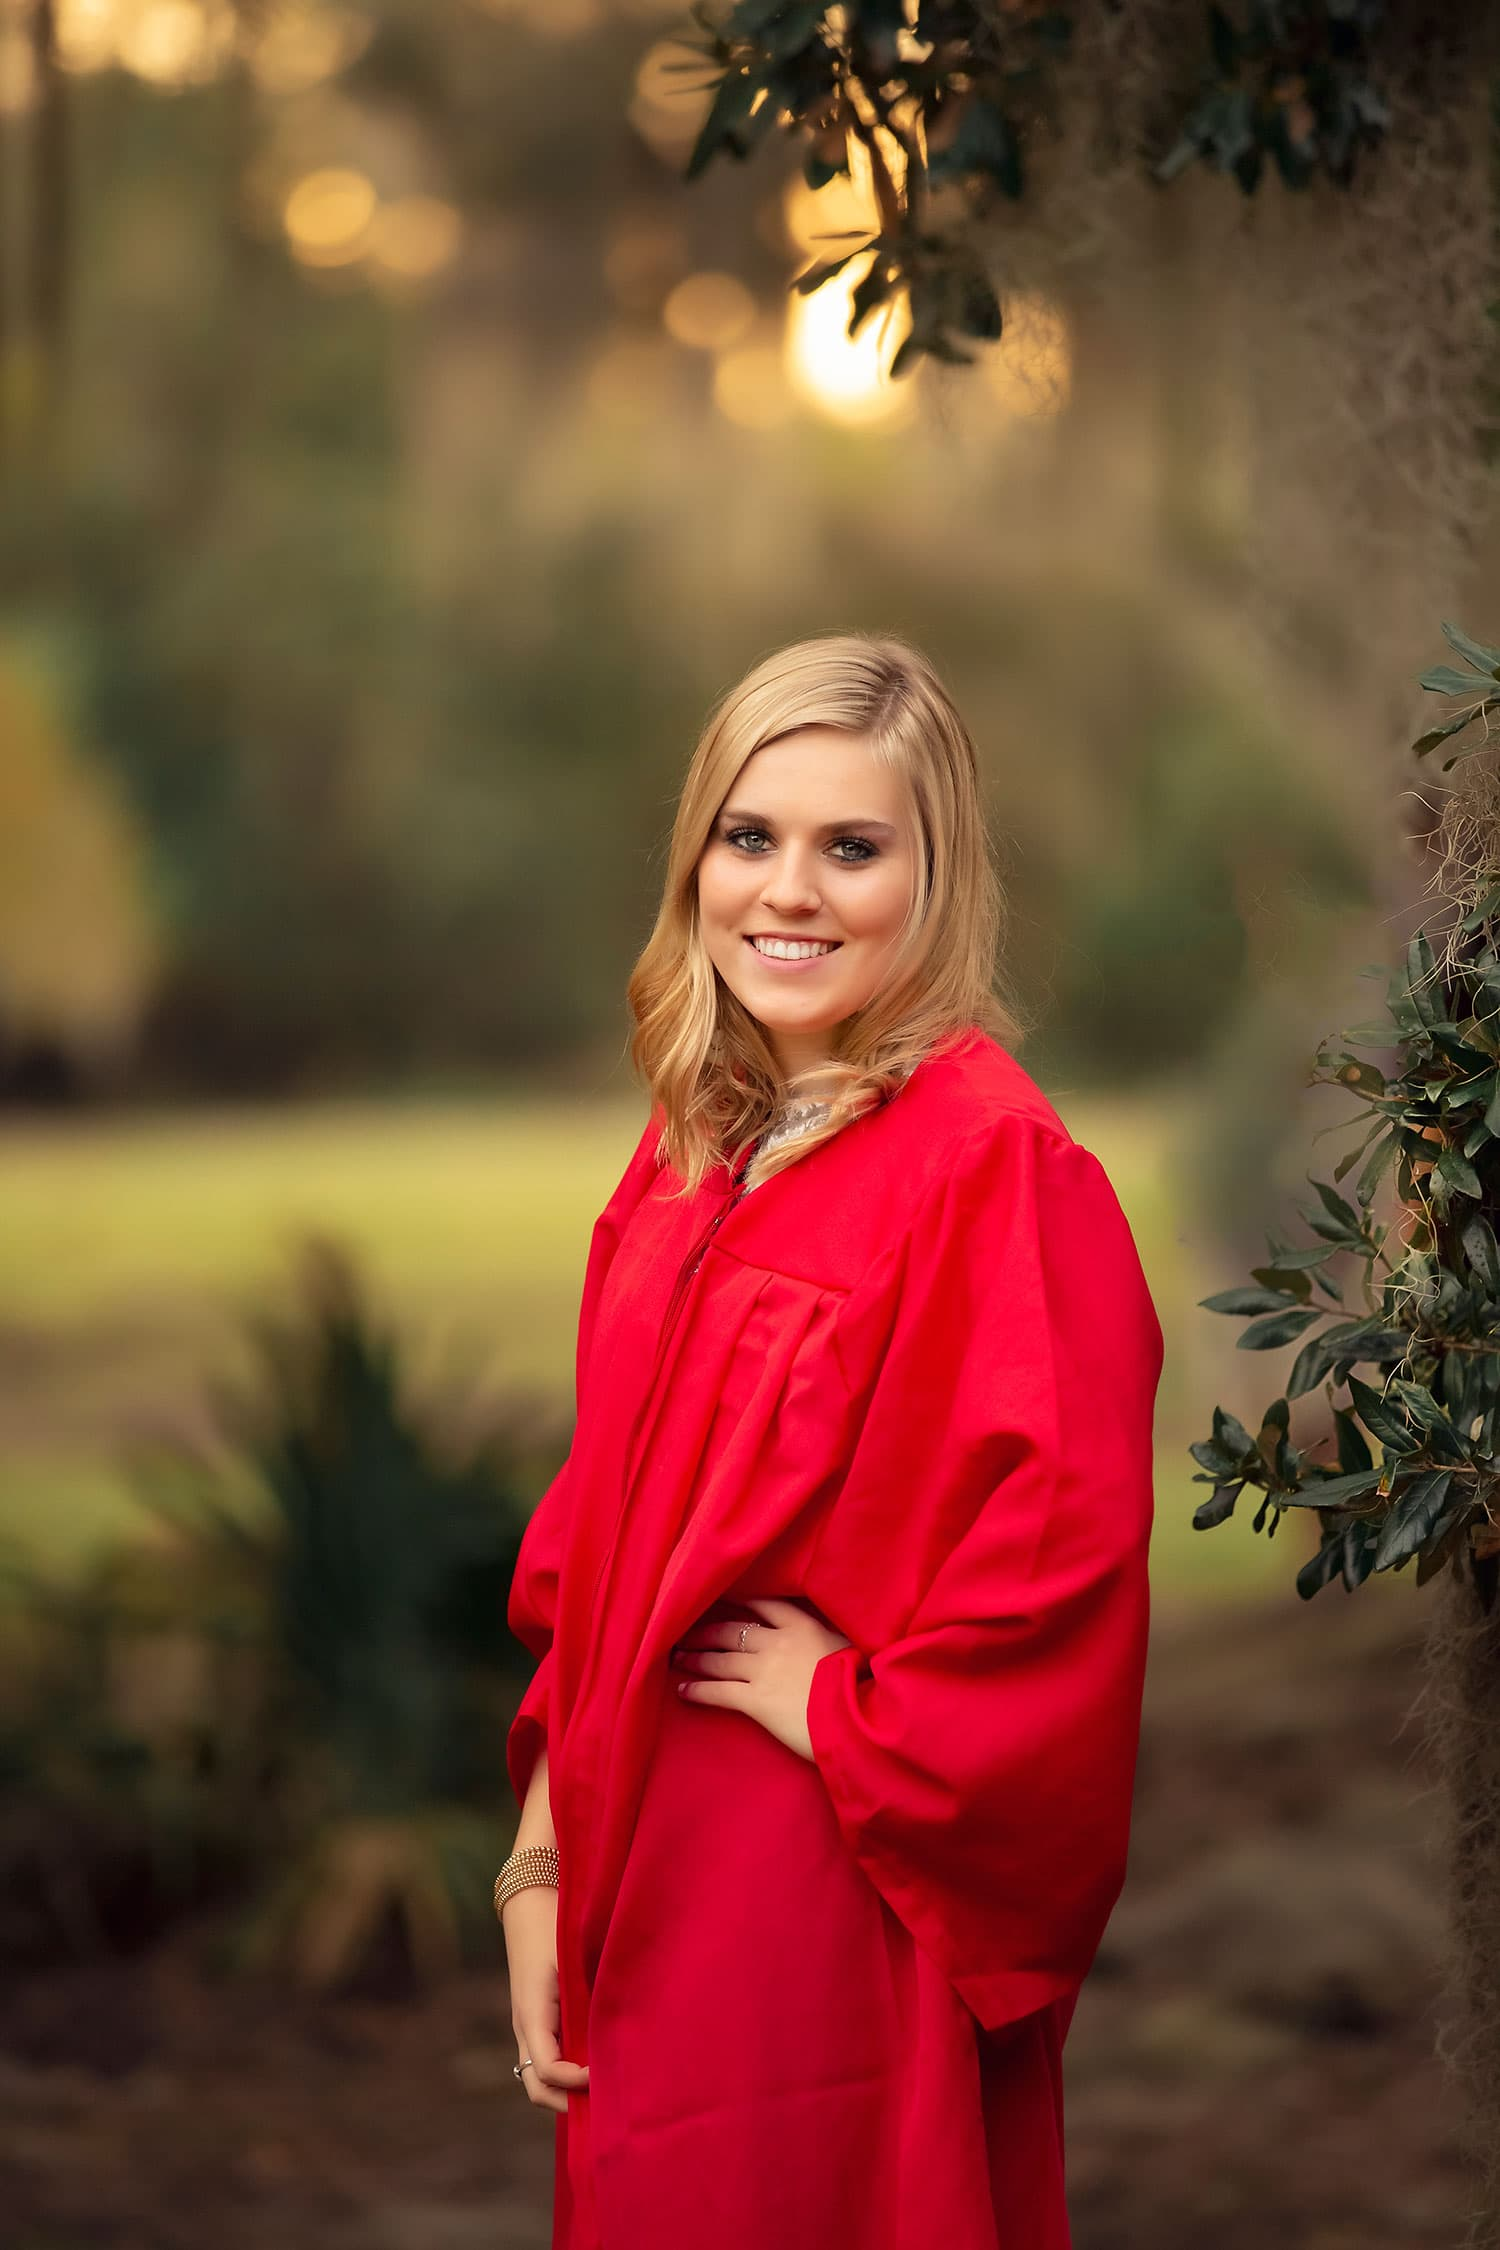 Senior photo session at Fontainebleau State Park